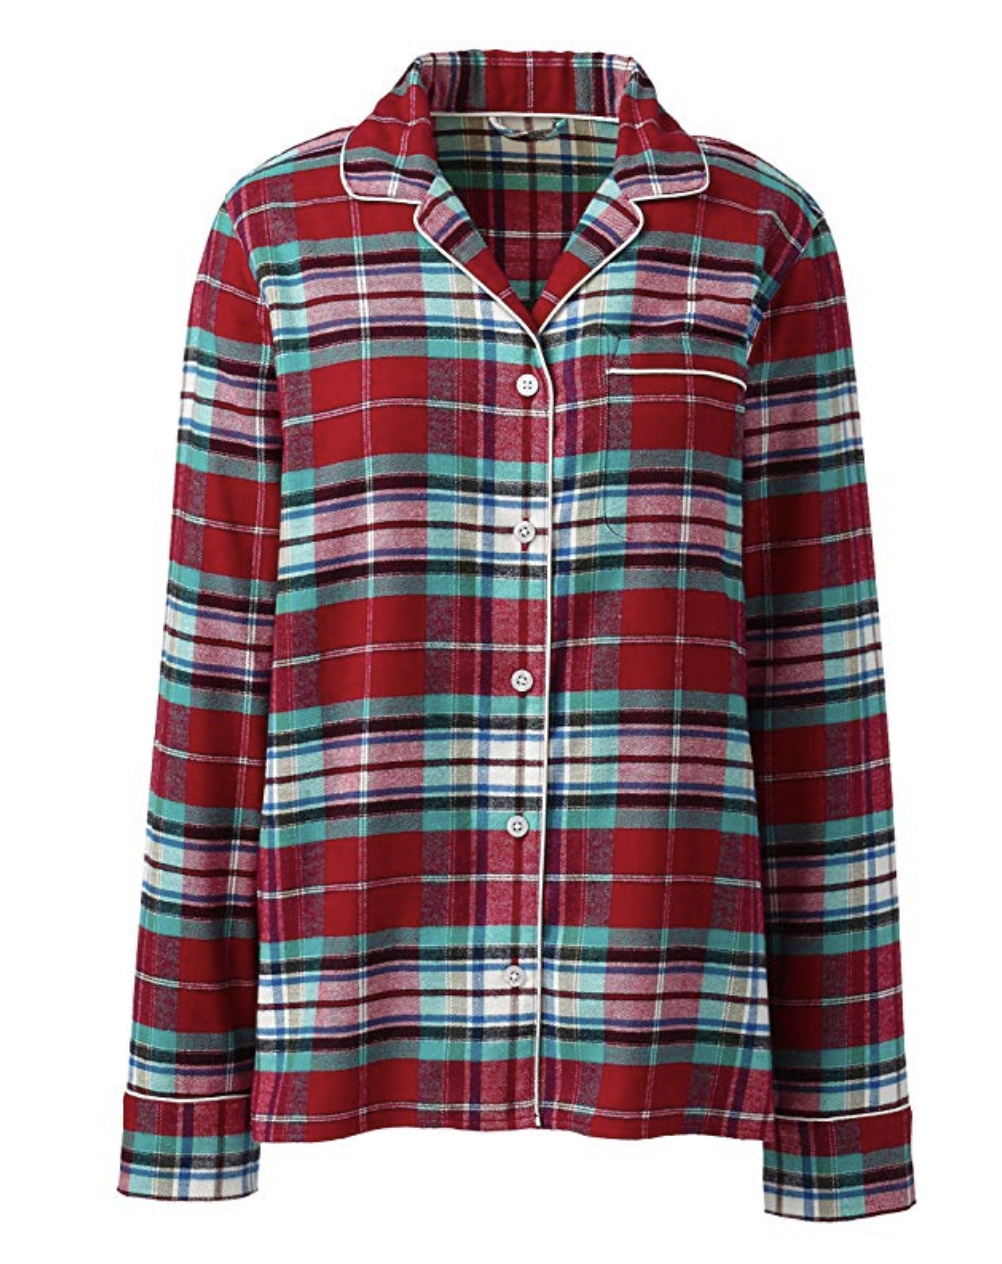 Land's End Women's Plus Size Print Flannel Pajama Top